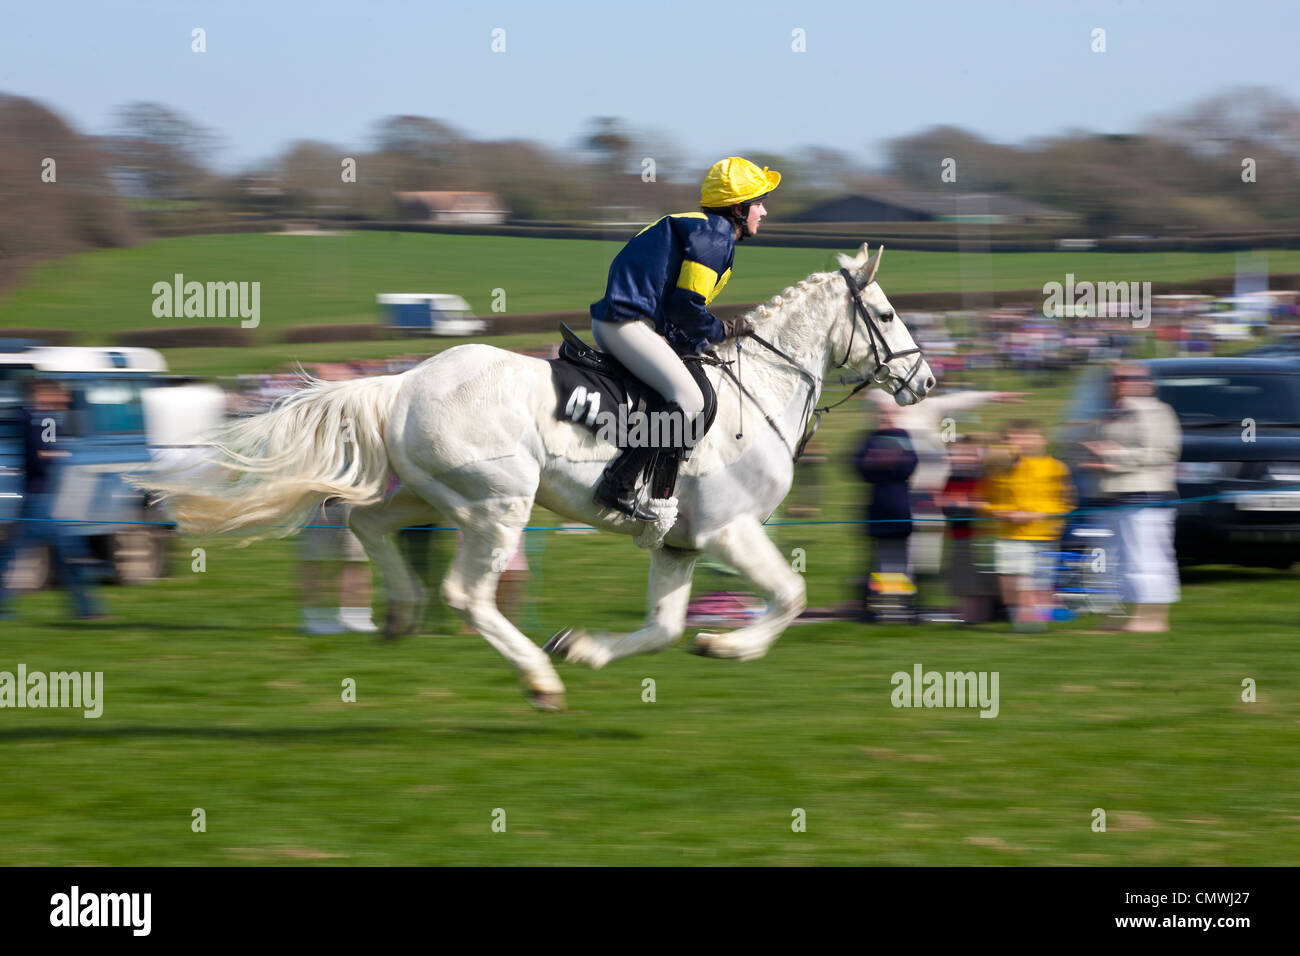 Grand National, Scurry, Apse Heath, Ryde, Isle of Wight England UK Stock Photo